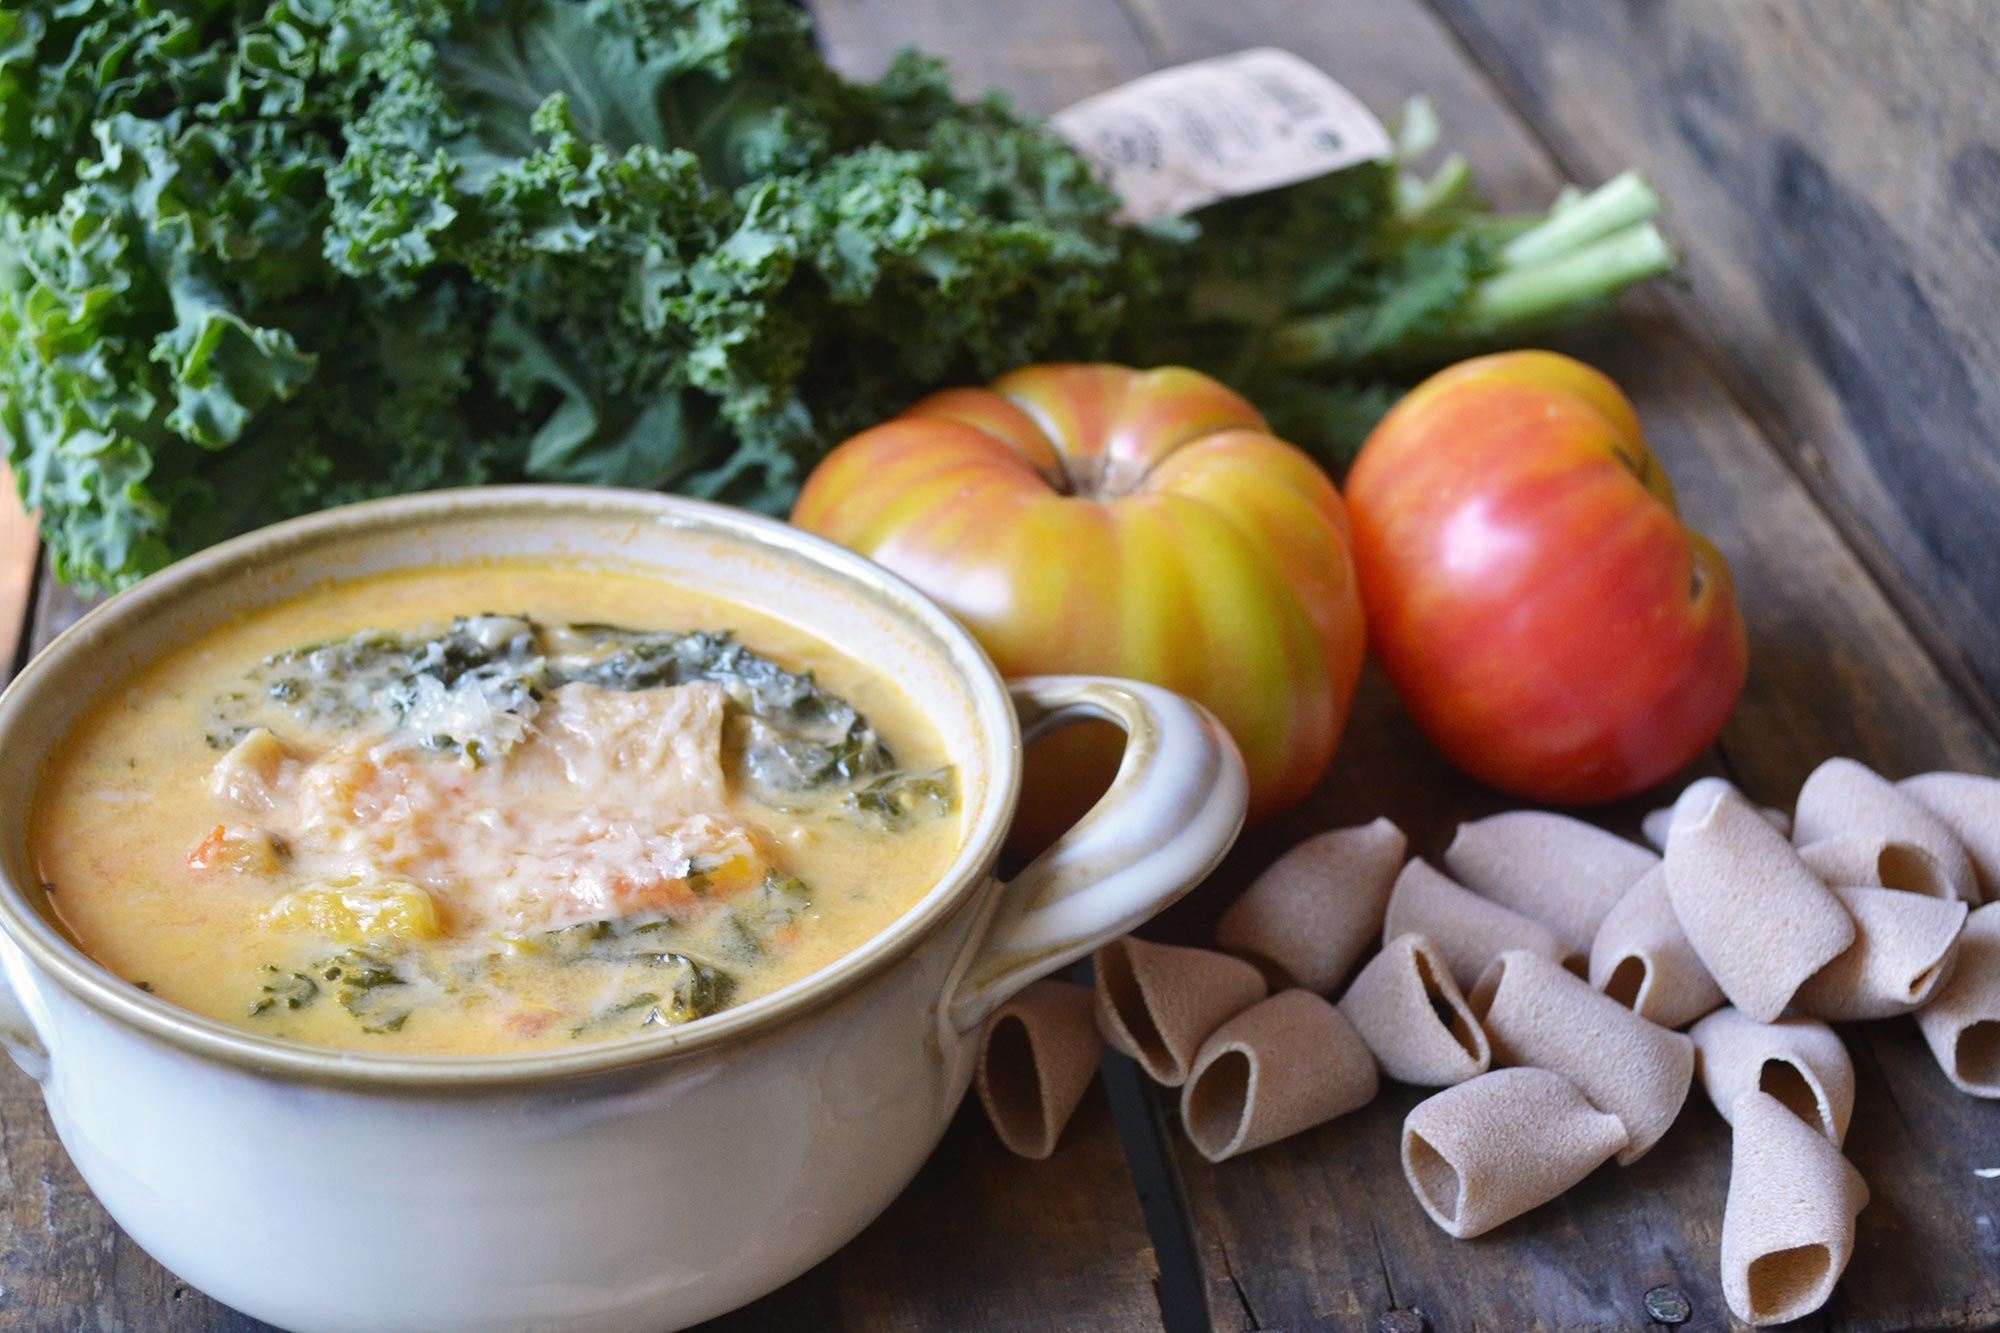 Rustic Kale and Tomato Soup